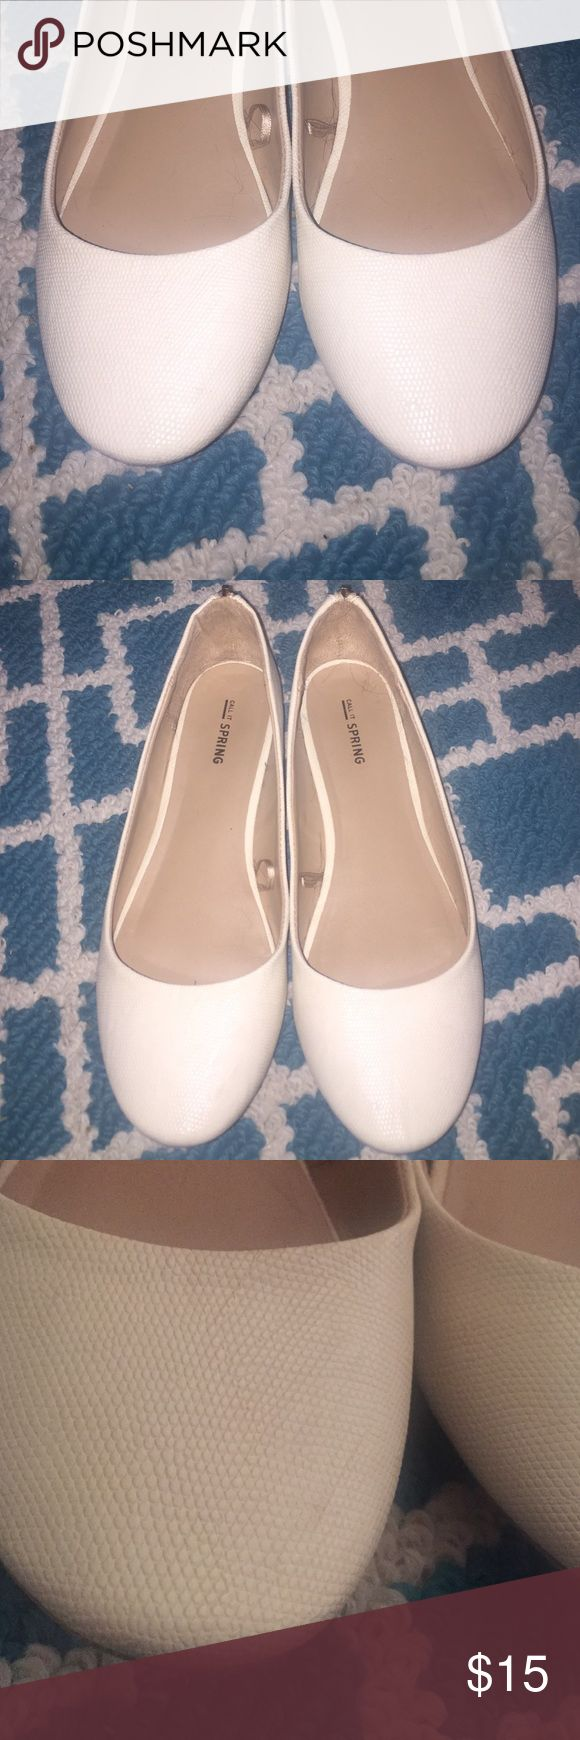 Cream Flats Classy cream flats with subtle snake skin texture. Barely worn. Great with slacks or a skirt. Call It Spring Shoes Flats & Loafers